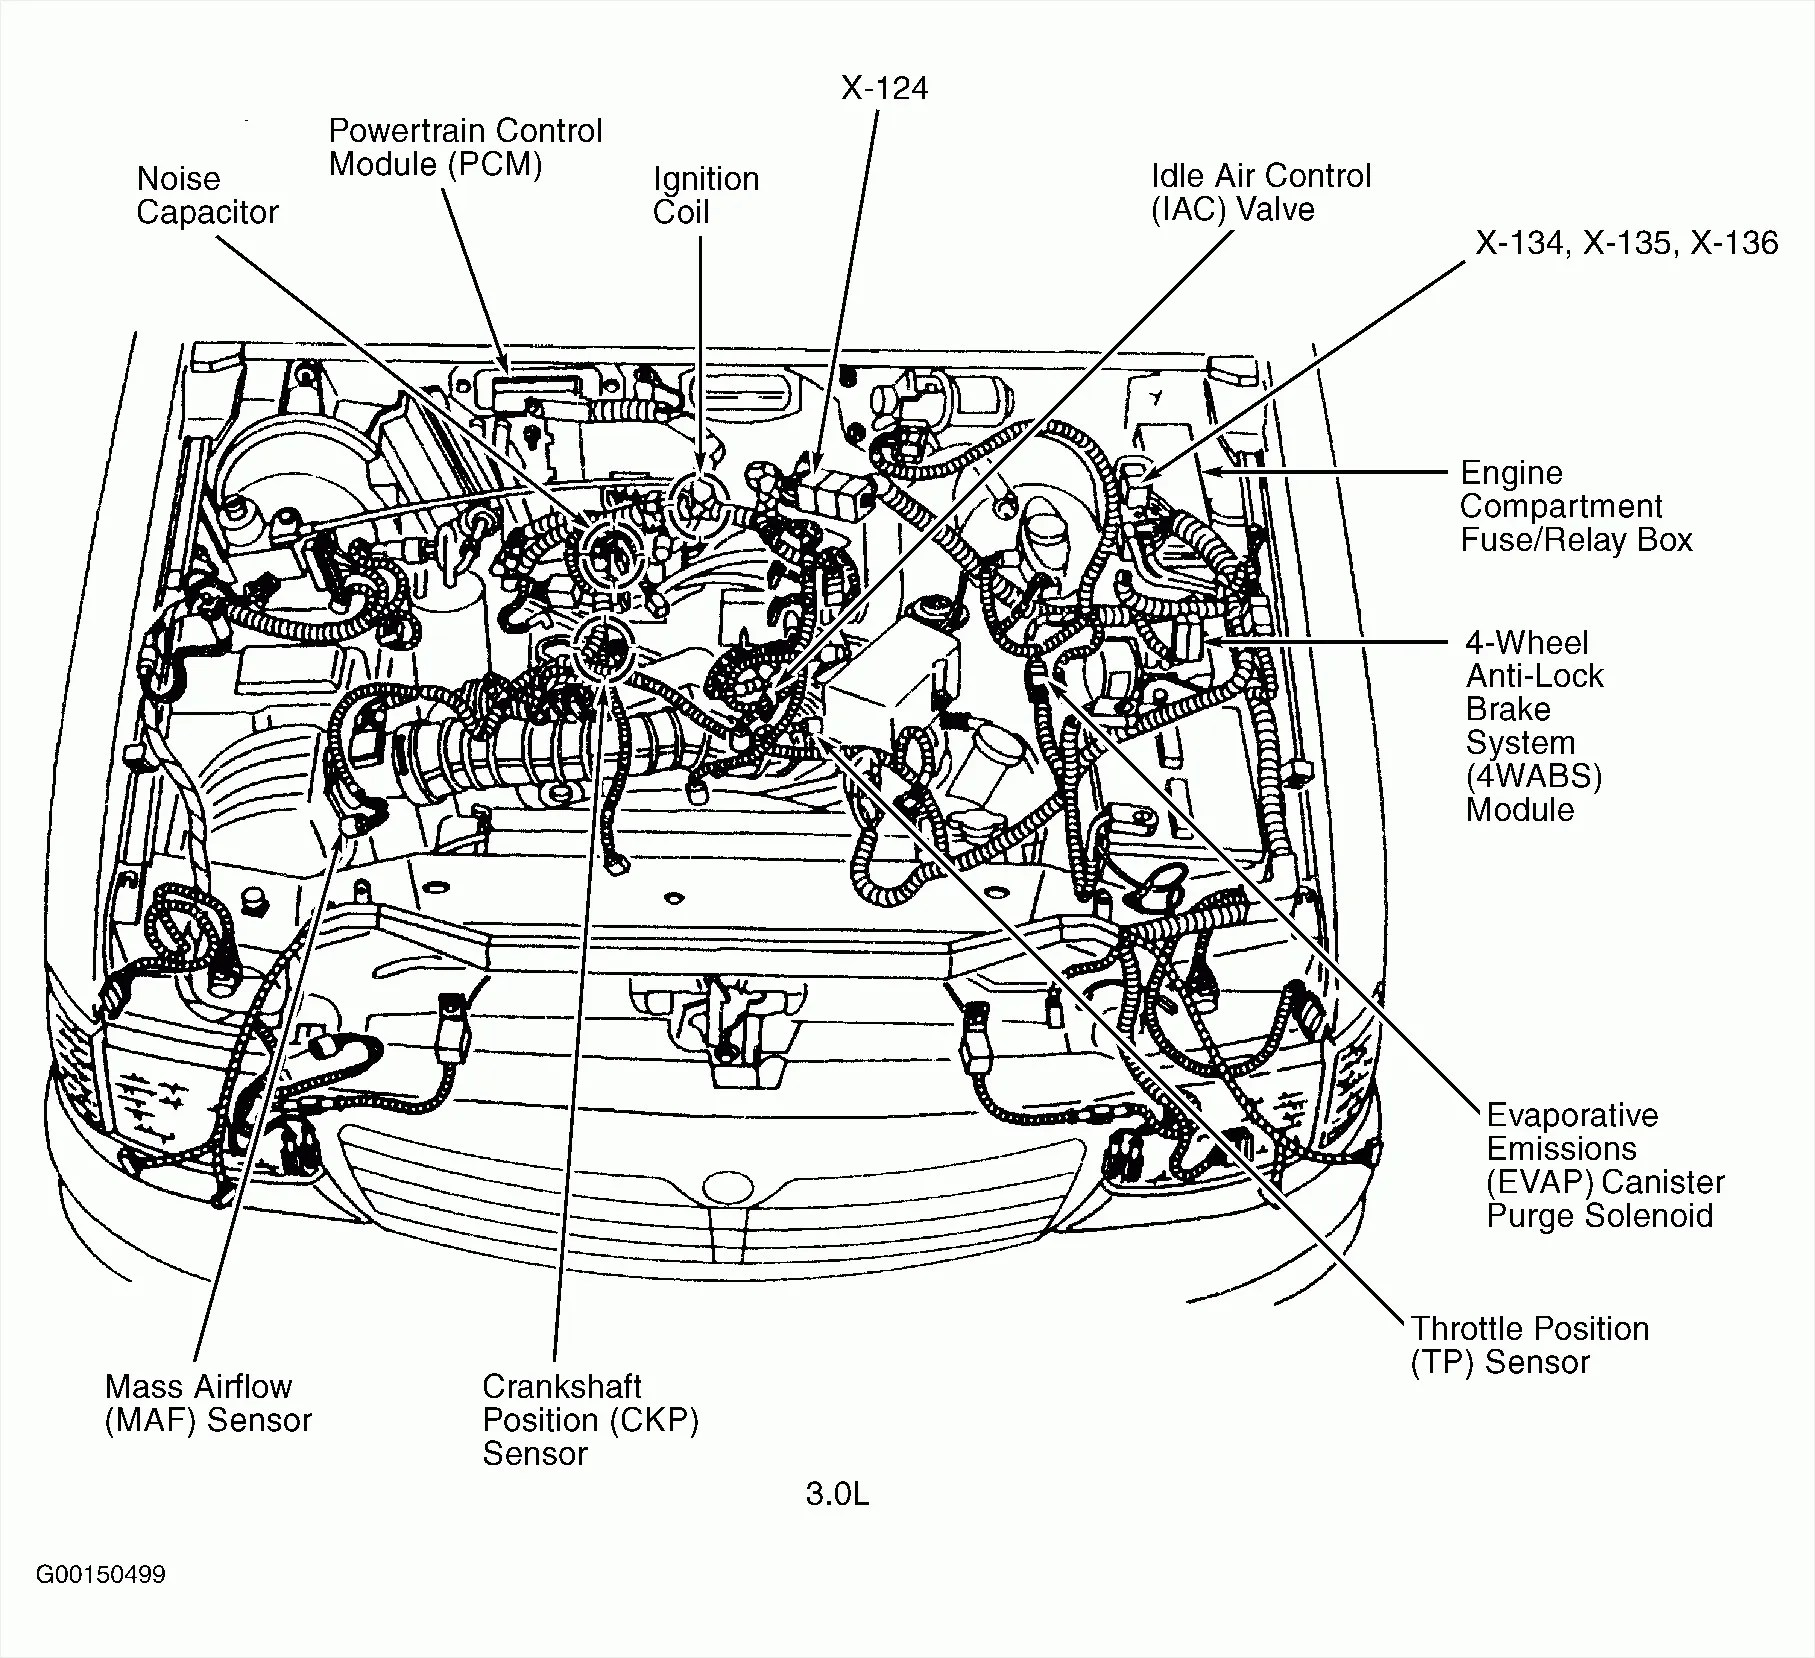 hight resolution of mazda truck engine diagrams wiring diagrams for mazda engine diagrams wiring diagram sheet mazda truck engine